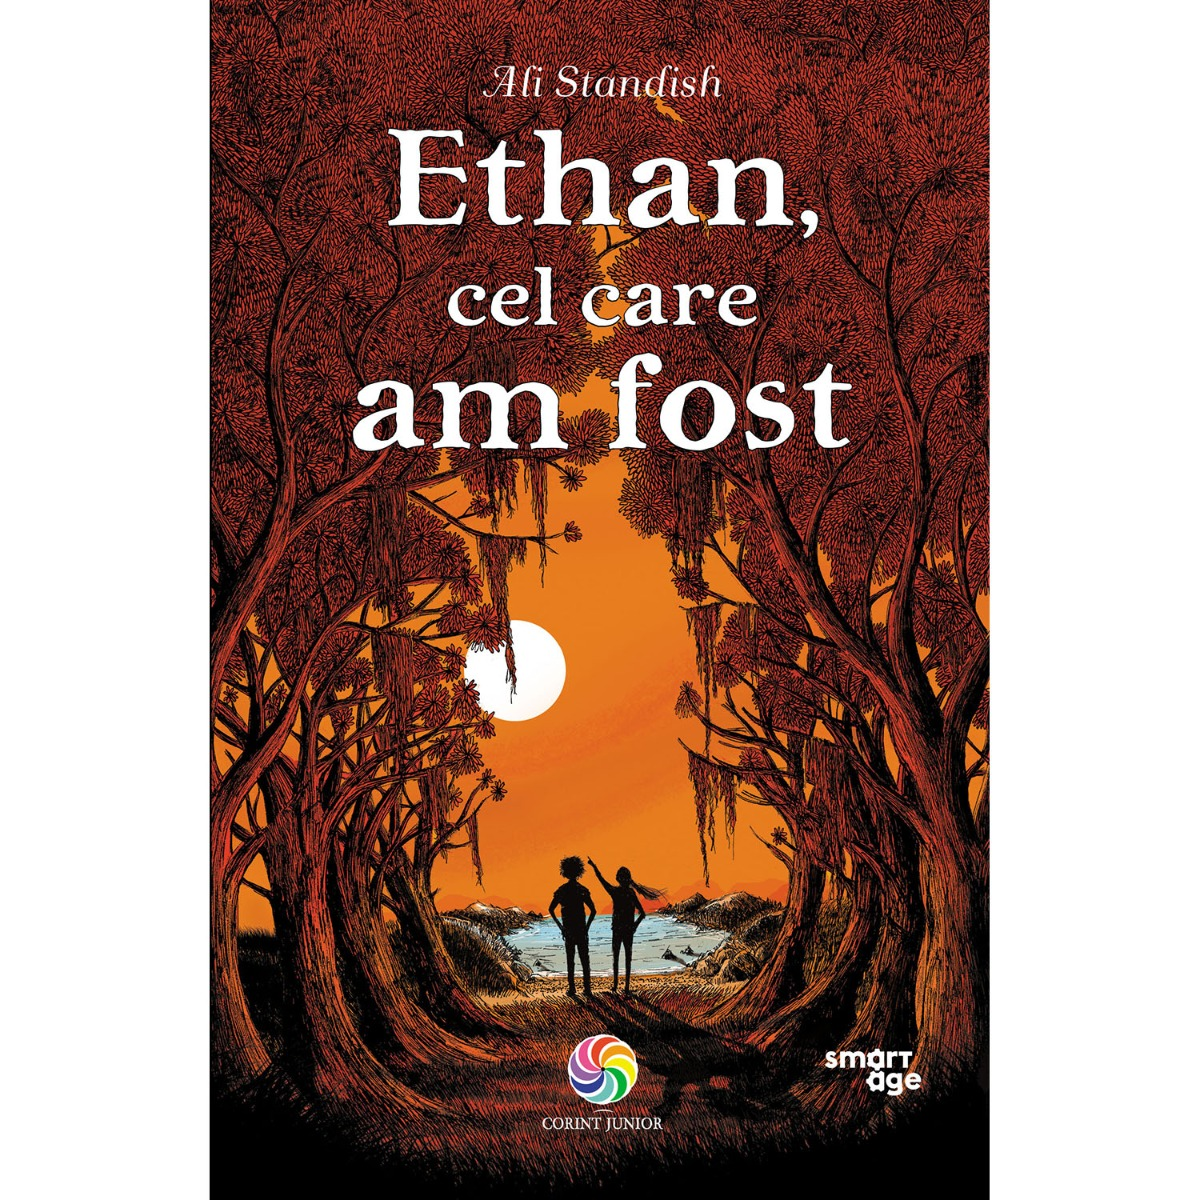 Carte Editura Corint, Ethan, cel care am fost, Ali Standish